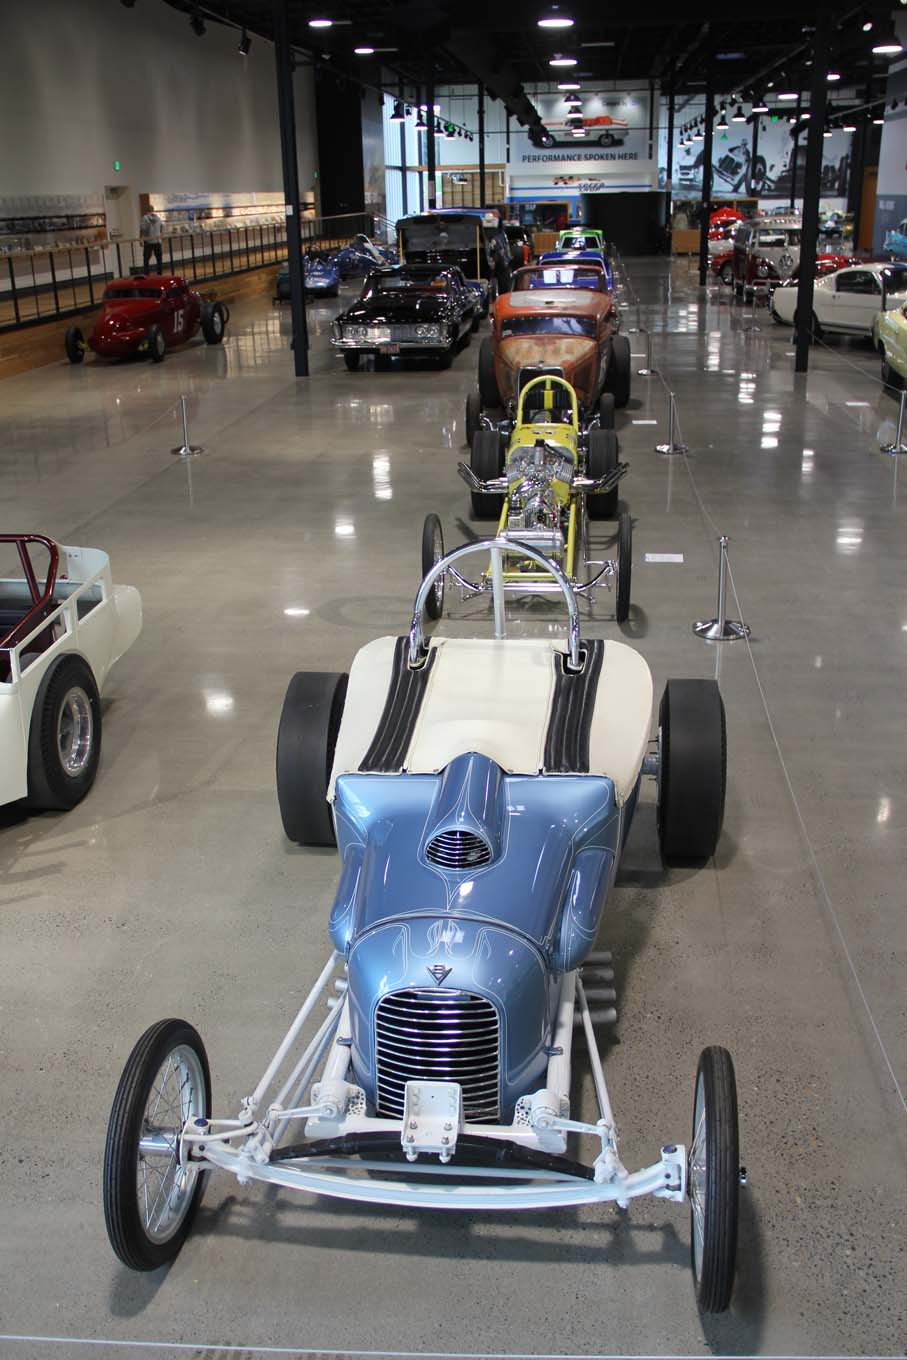 Though still being finalized when HOT ROD visited, this is the main display area that will initially feature drag-racing-related cars. The space will rotate vehicles from different forms of racing, including boats and planes. The museum's lineup of future installations is impressive.